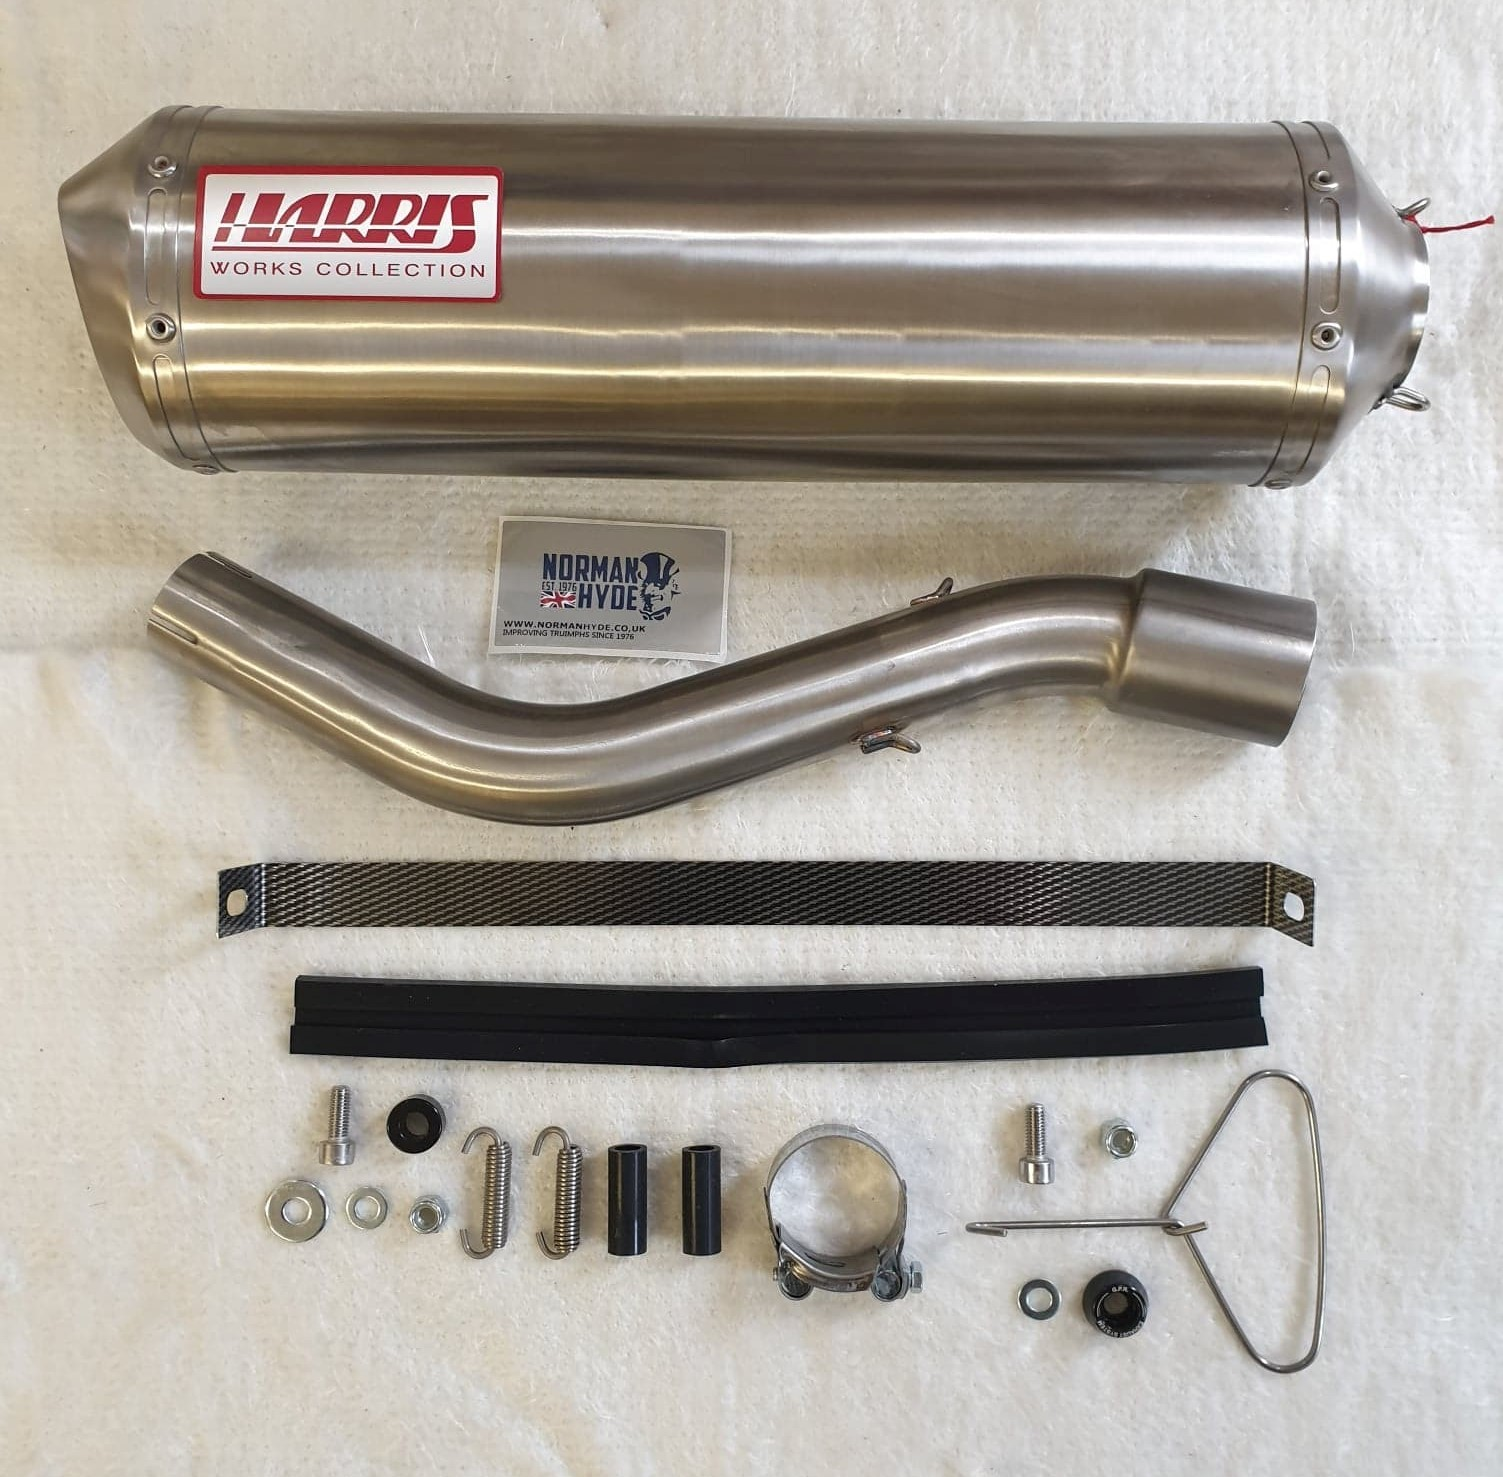 HARRIS WORKS COLLECTION STAINLESS SLIP-ON FOR YAMAHA XT 600 - E - K 1985/02